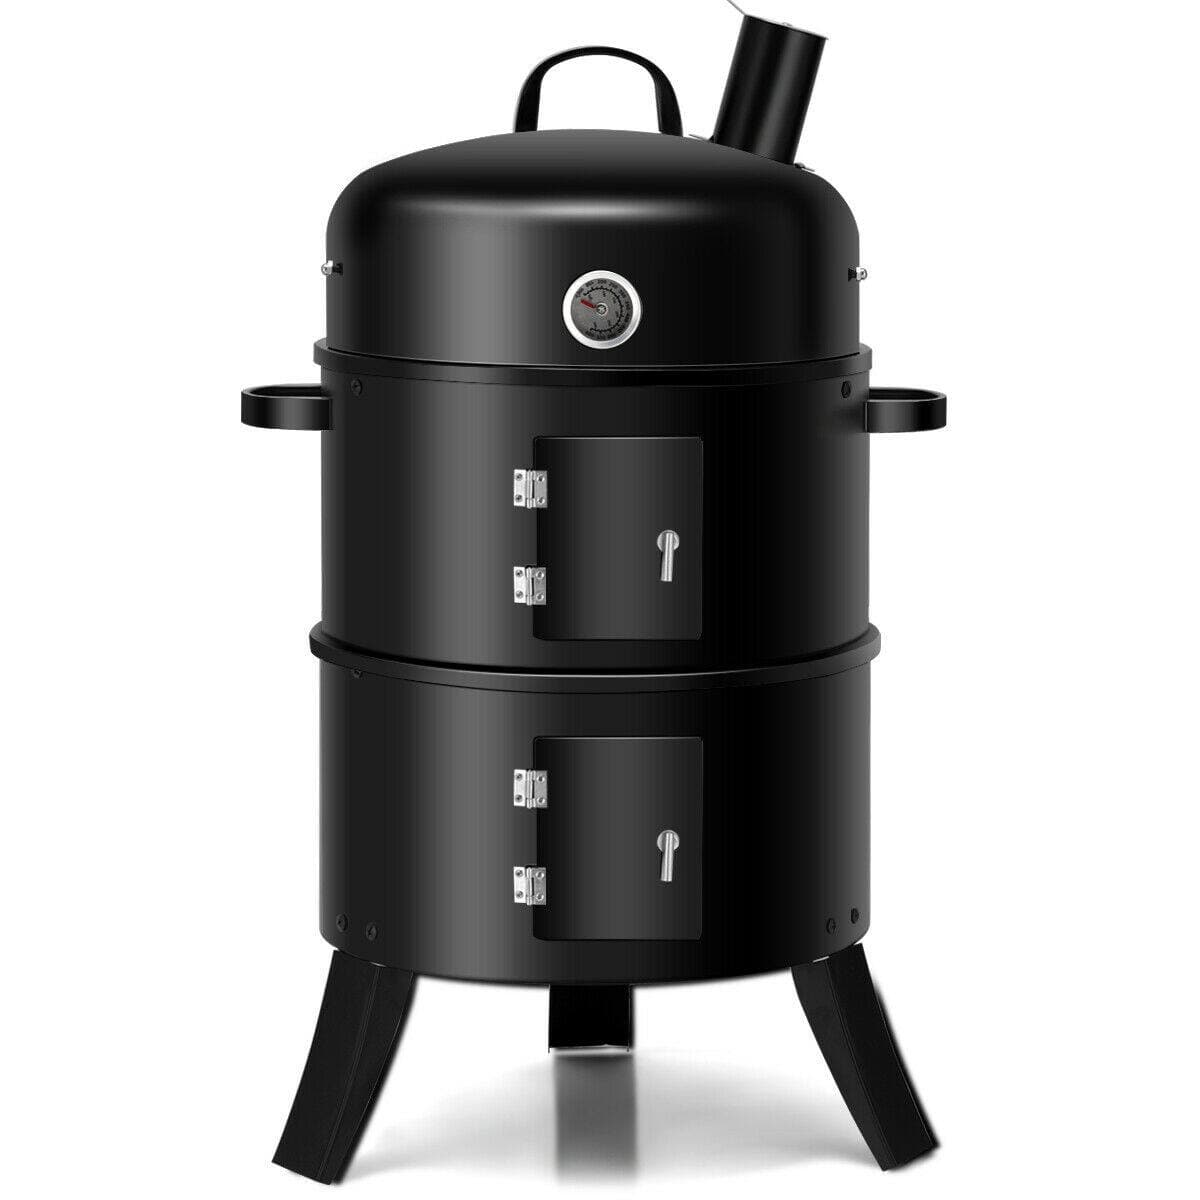 Costway 3-in-1 Portable Round Charcoal Smoker BBQ Grill Built-in Thermometer - $66.95 + Free Shipping